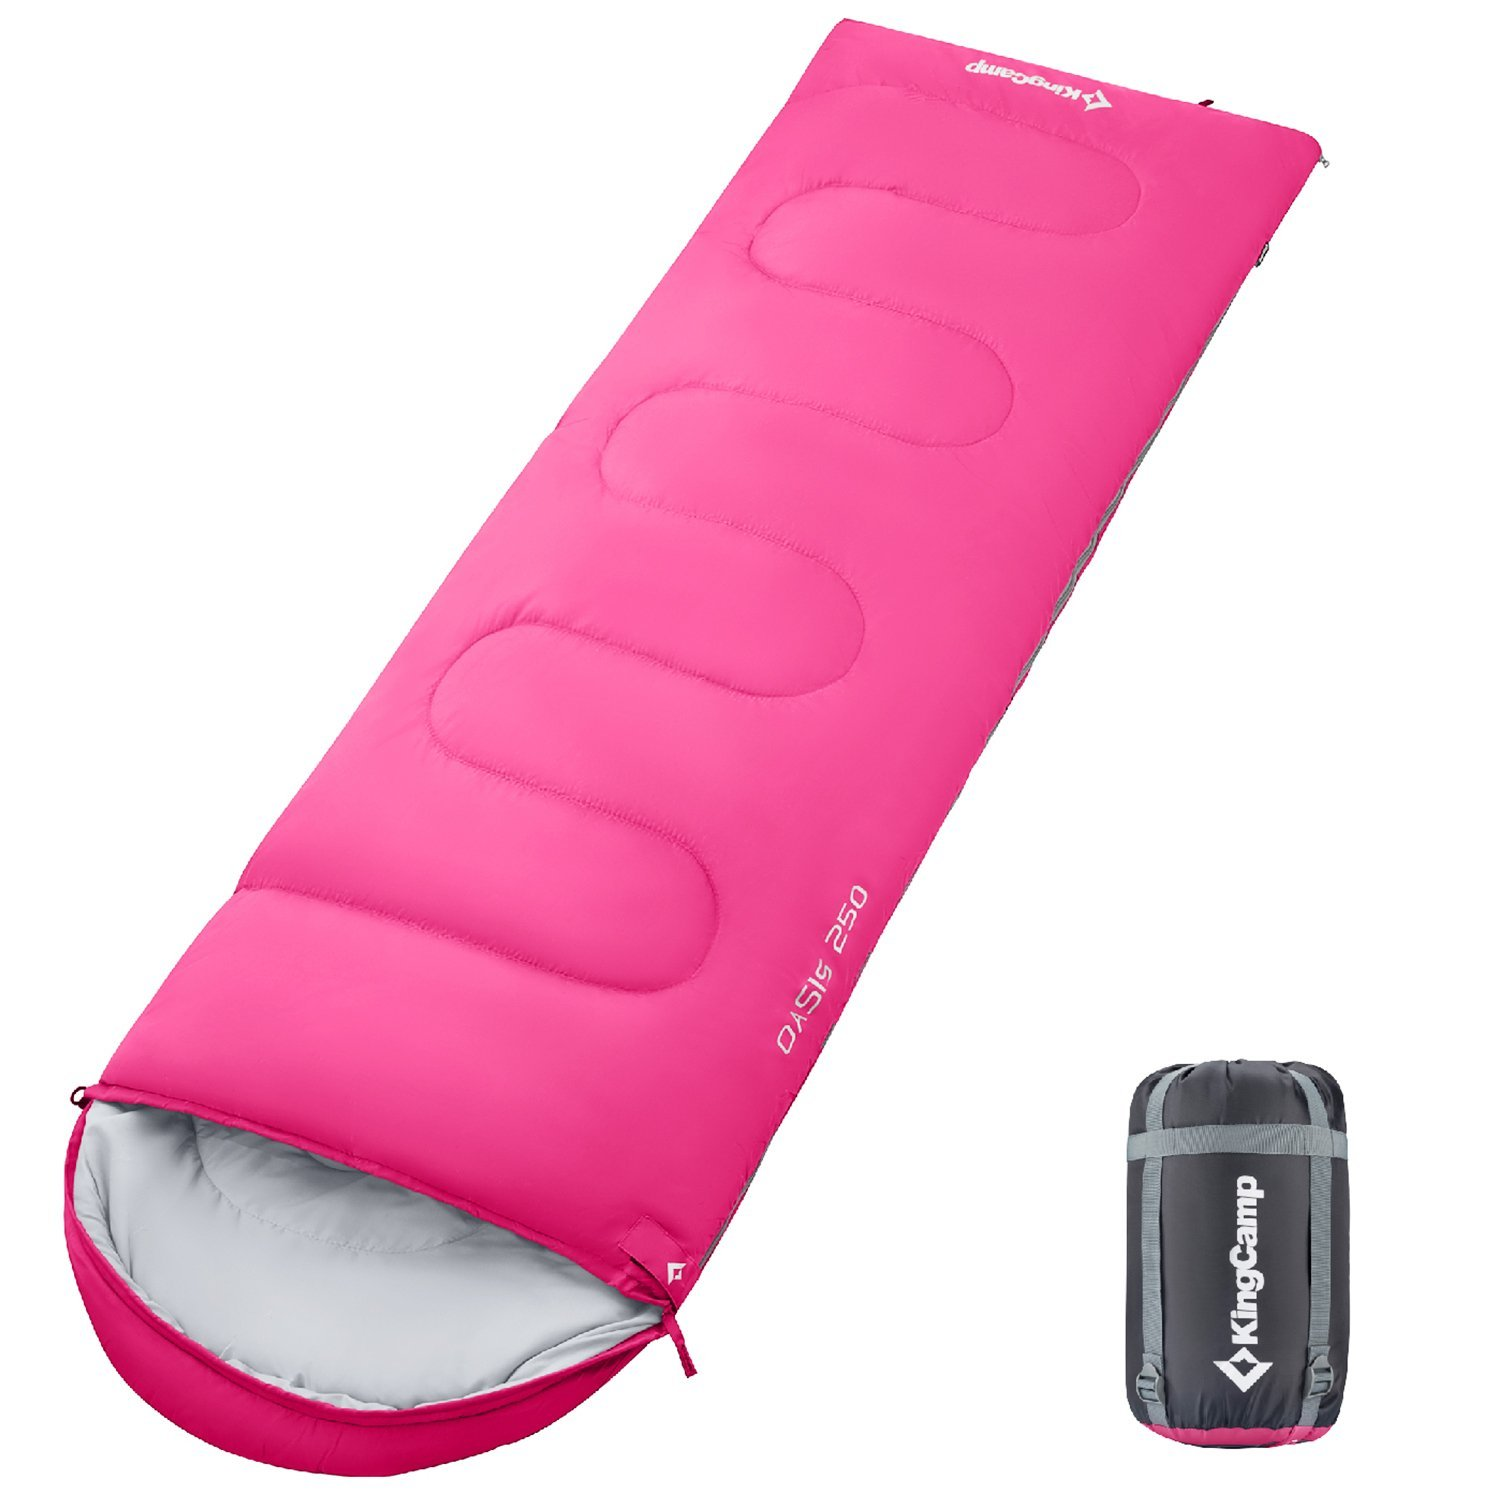 KingCamp Envelope Sleeping Bag 4 Season Lightweight Comfort with Compression Sack Camping Backpack Temp Rating 26F/-3C